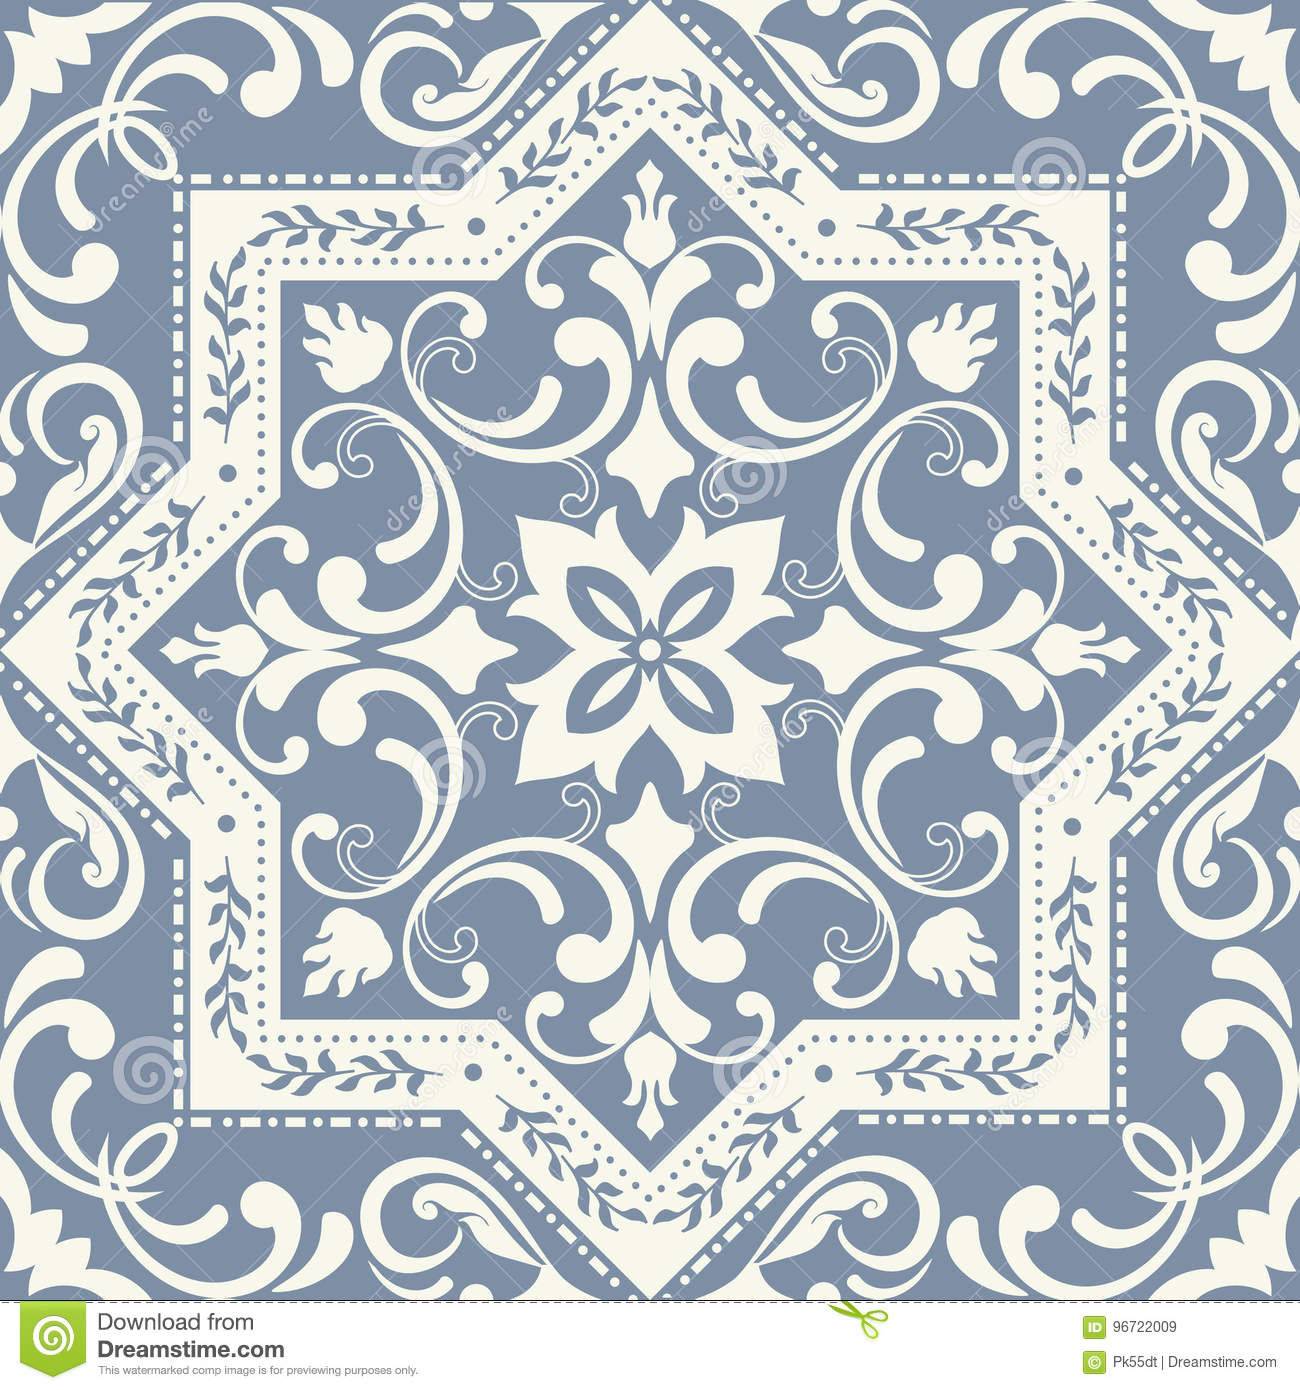 Vintage Tile Patterns Can Be Used For Wallpaper, Pattern Fills, Web Page Background, Surface ...